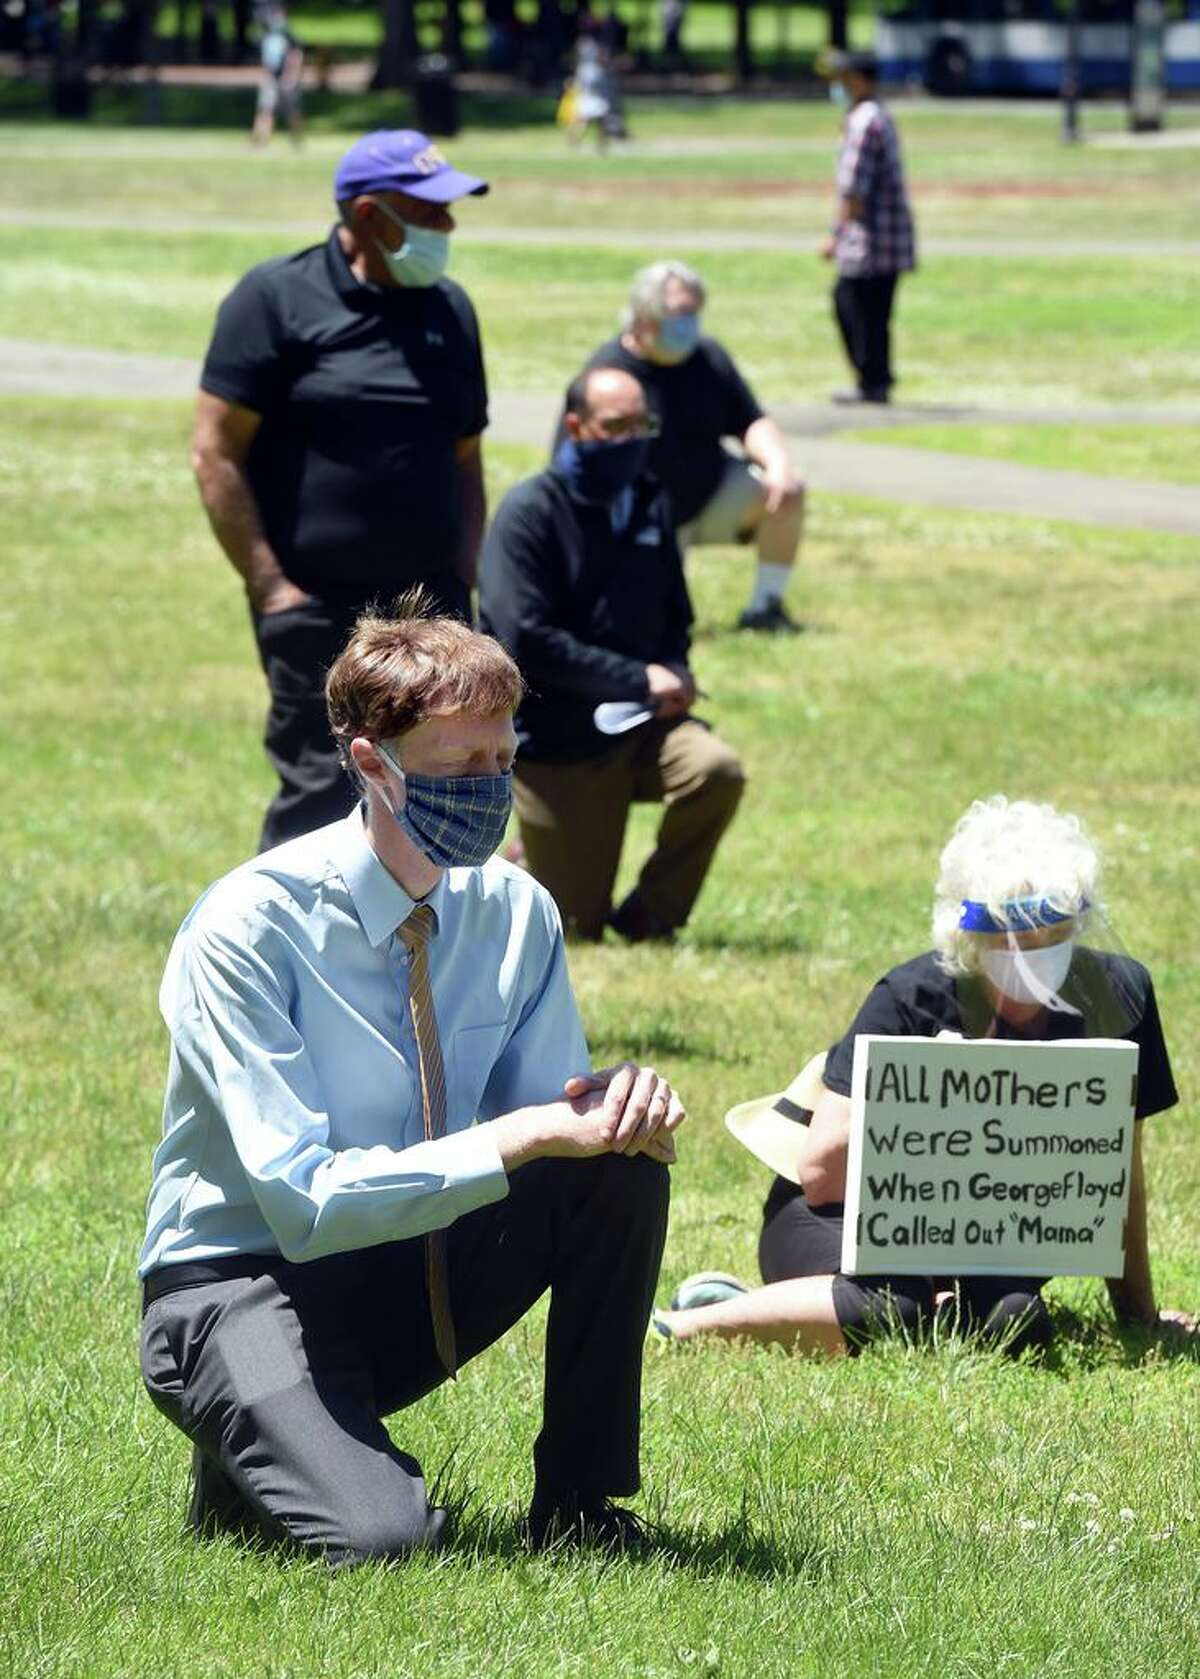 New Haven Mayor Justin Elicker (foreground) takes a knee in silence, the time George Floyd was pinned to the ground before his death at the hands of Minneapolis police, with others during an elder protest to support black lives, oppose police brutality and support institutional change on the New Haven Green on Monday .